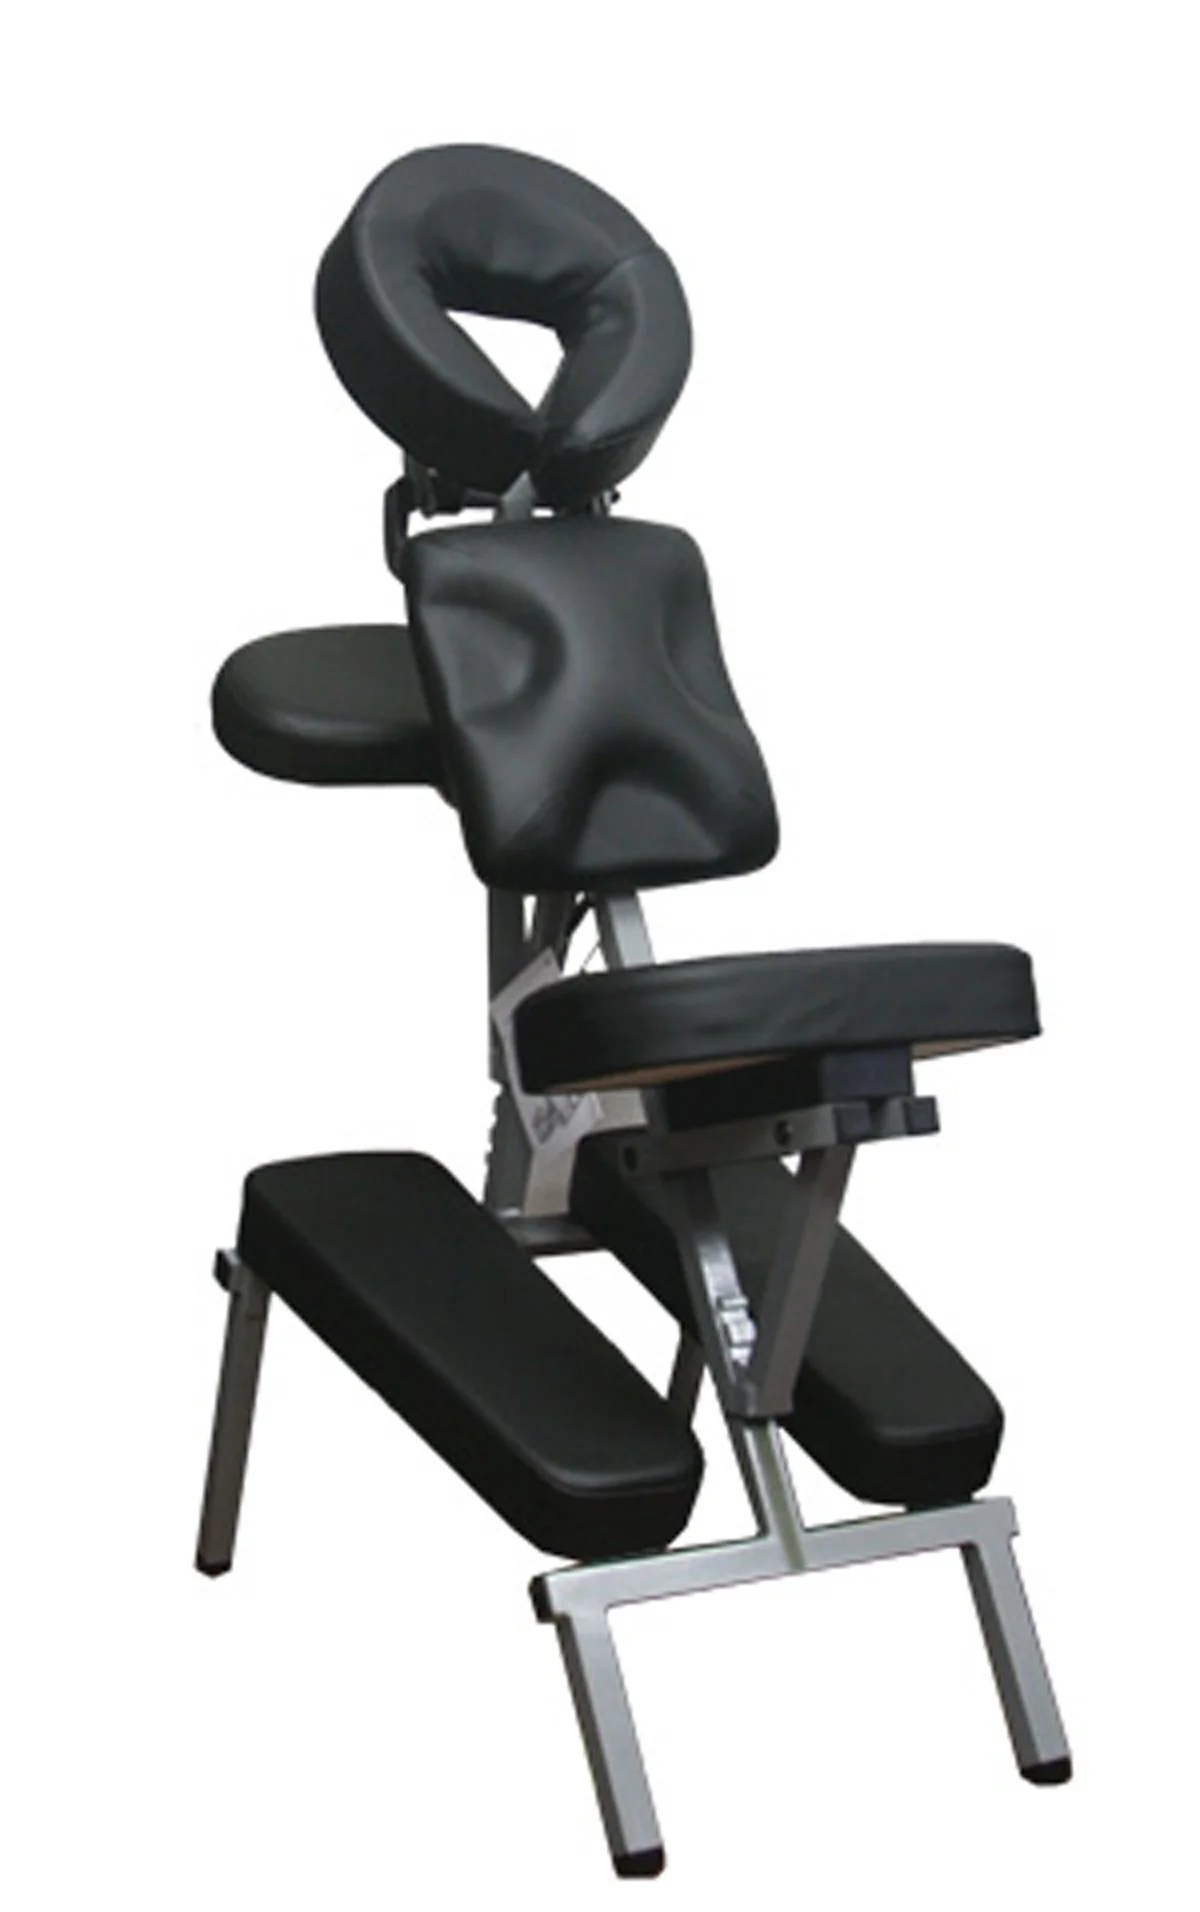 Facial Chairs A Anda Portable Massage Chair Black T 13 Acubest